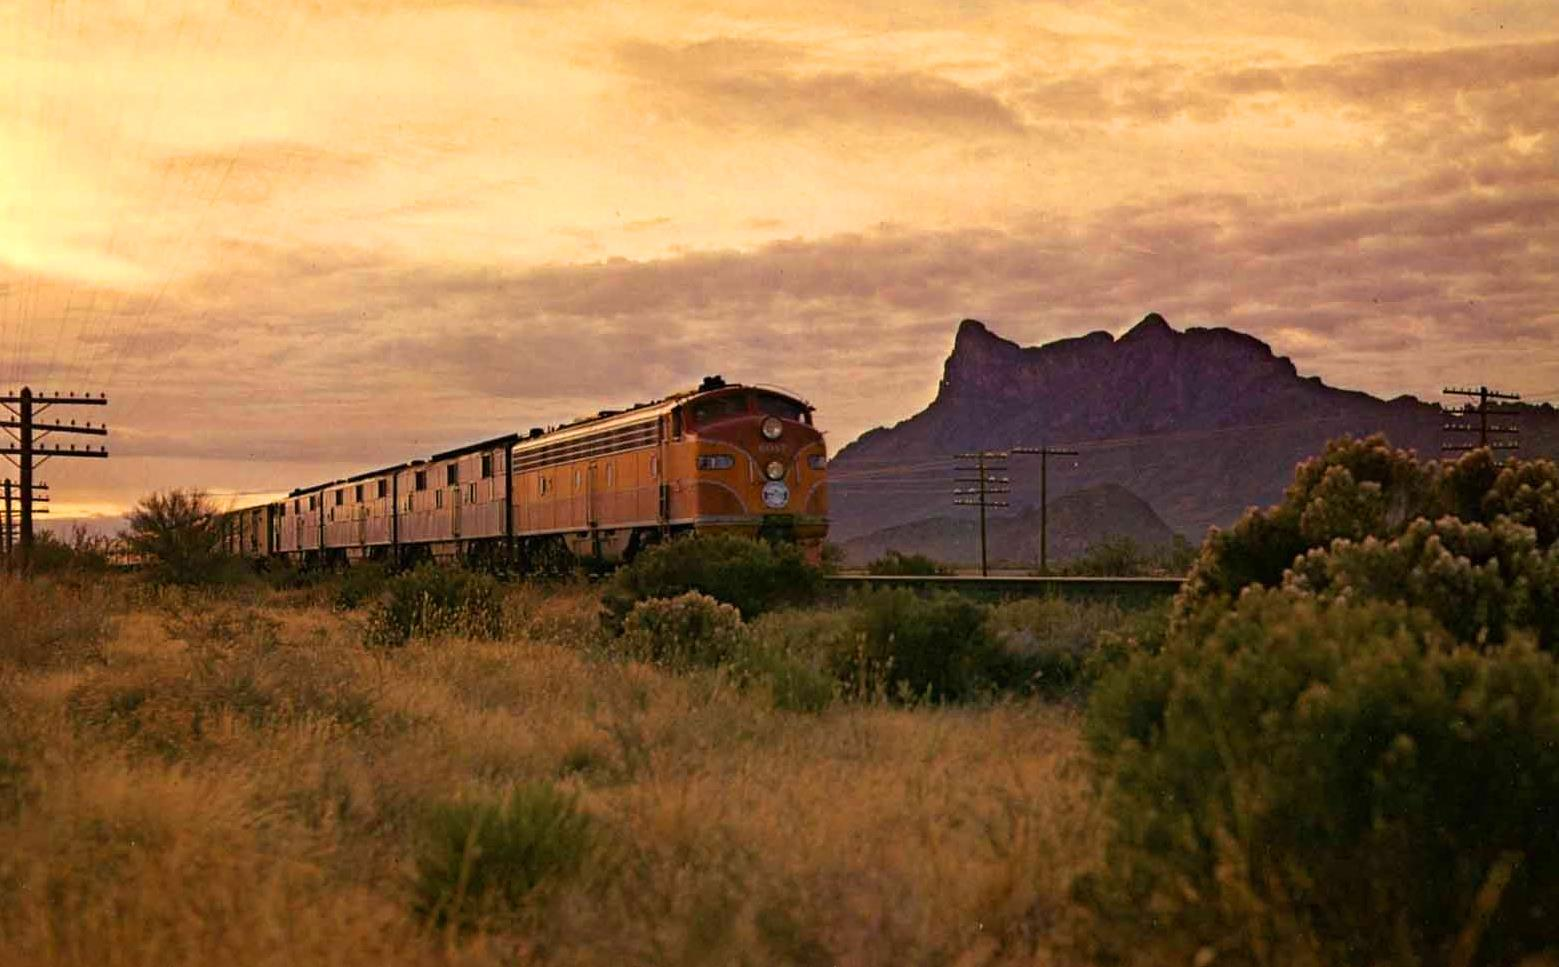 The Most Amazing Train Journeys in the World | The Sunset Limited